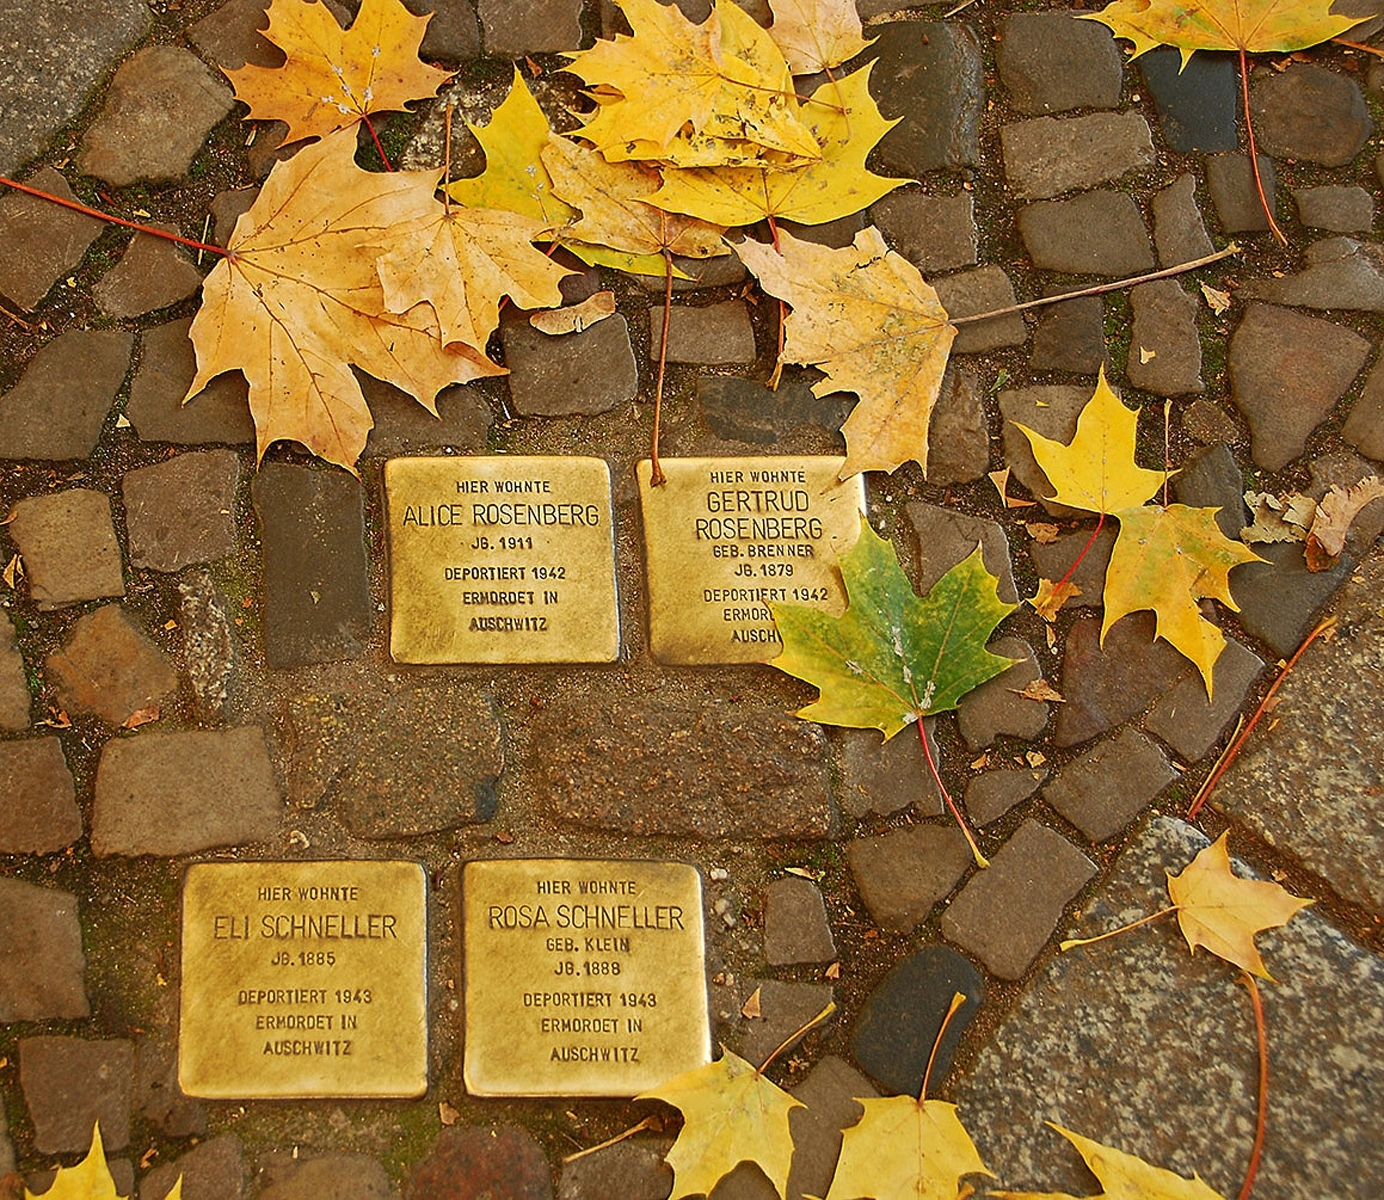 The-Stolpersteine-project-places-plaques-in-German-cities-near-the-victims-last-known-residence-JM-1-Place-by-Diana-Rebman-ML